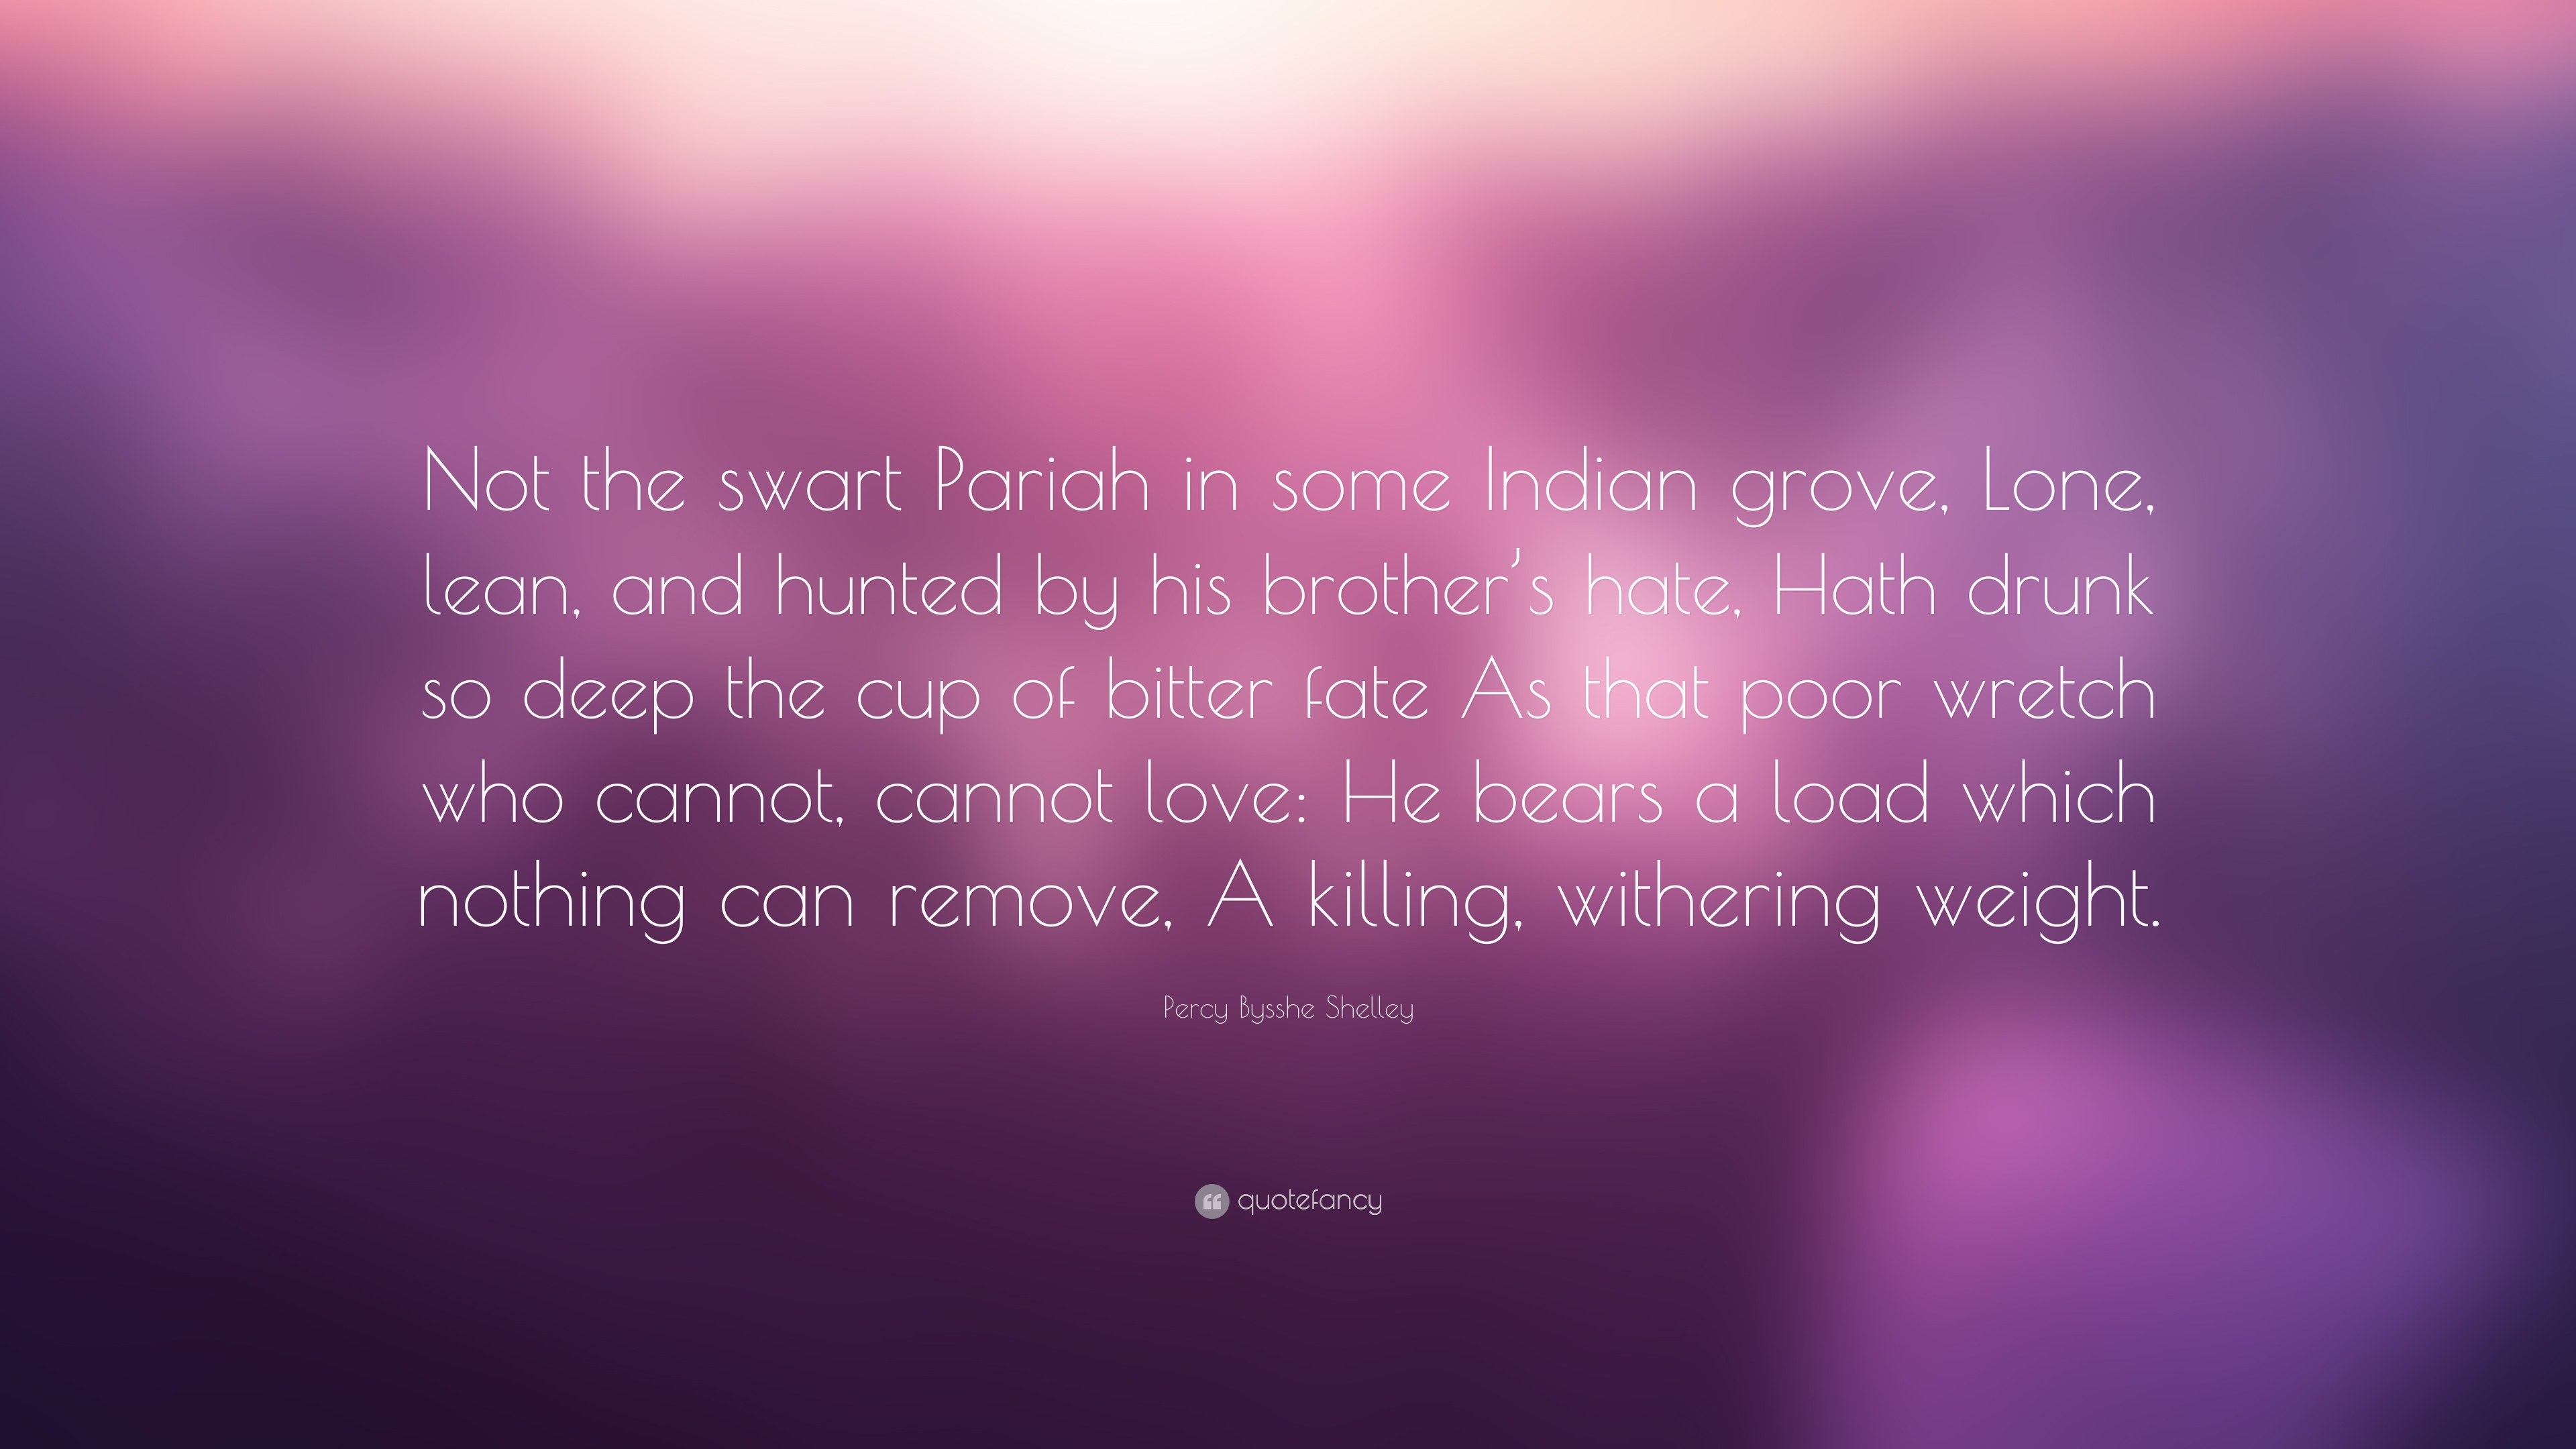 Simple Wallpaper Love Indian - 347949-Percy-Bysshe-Shelley-Quote-Not-the-swart-Pariah-in-some-Indian  Photograph_808097.jpg